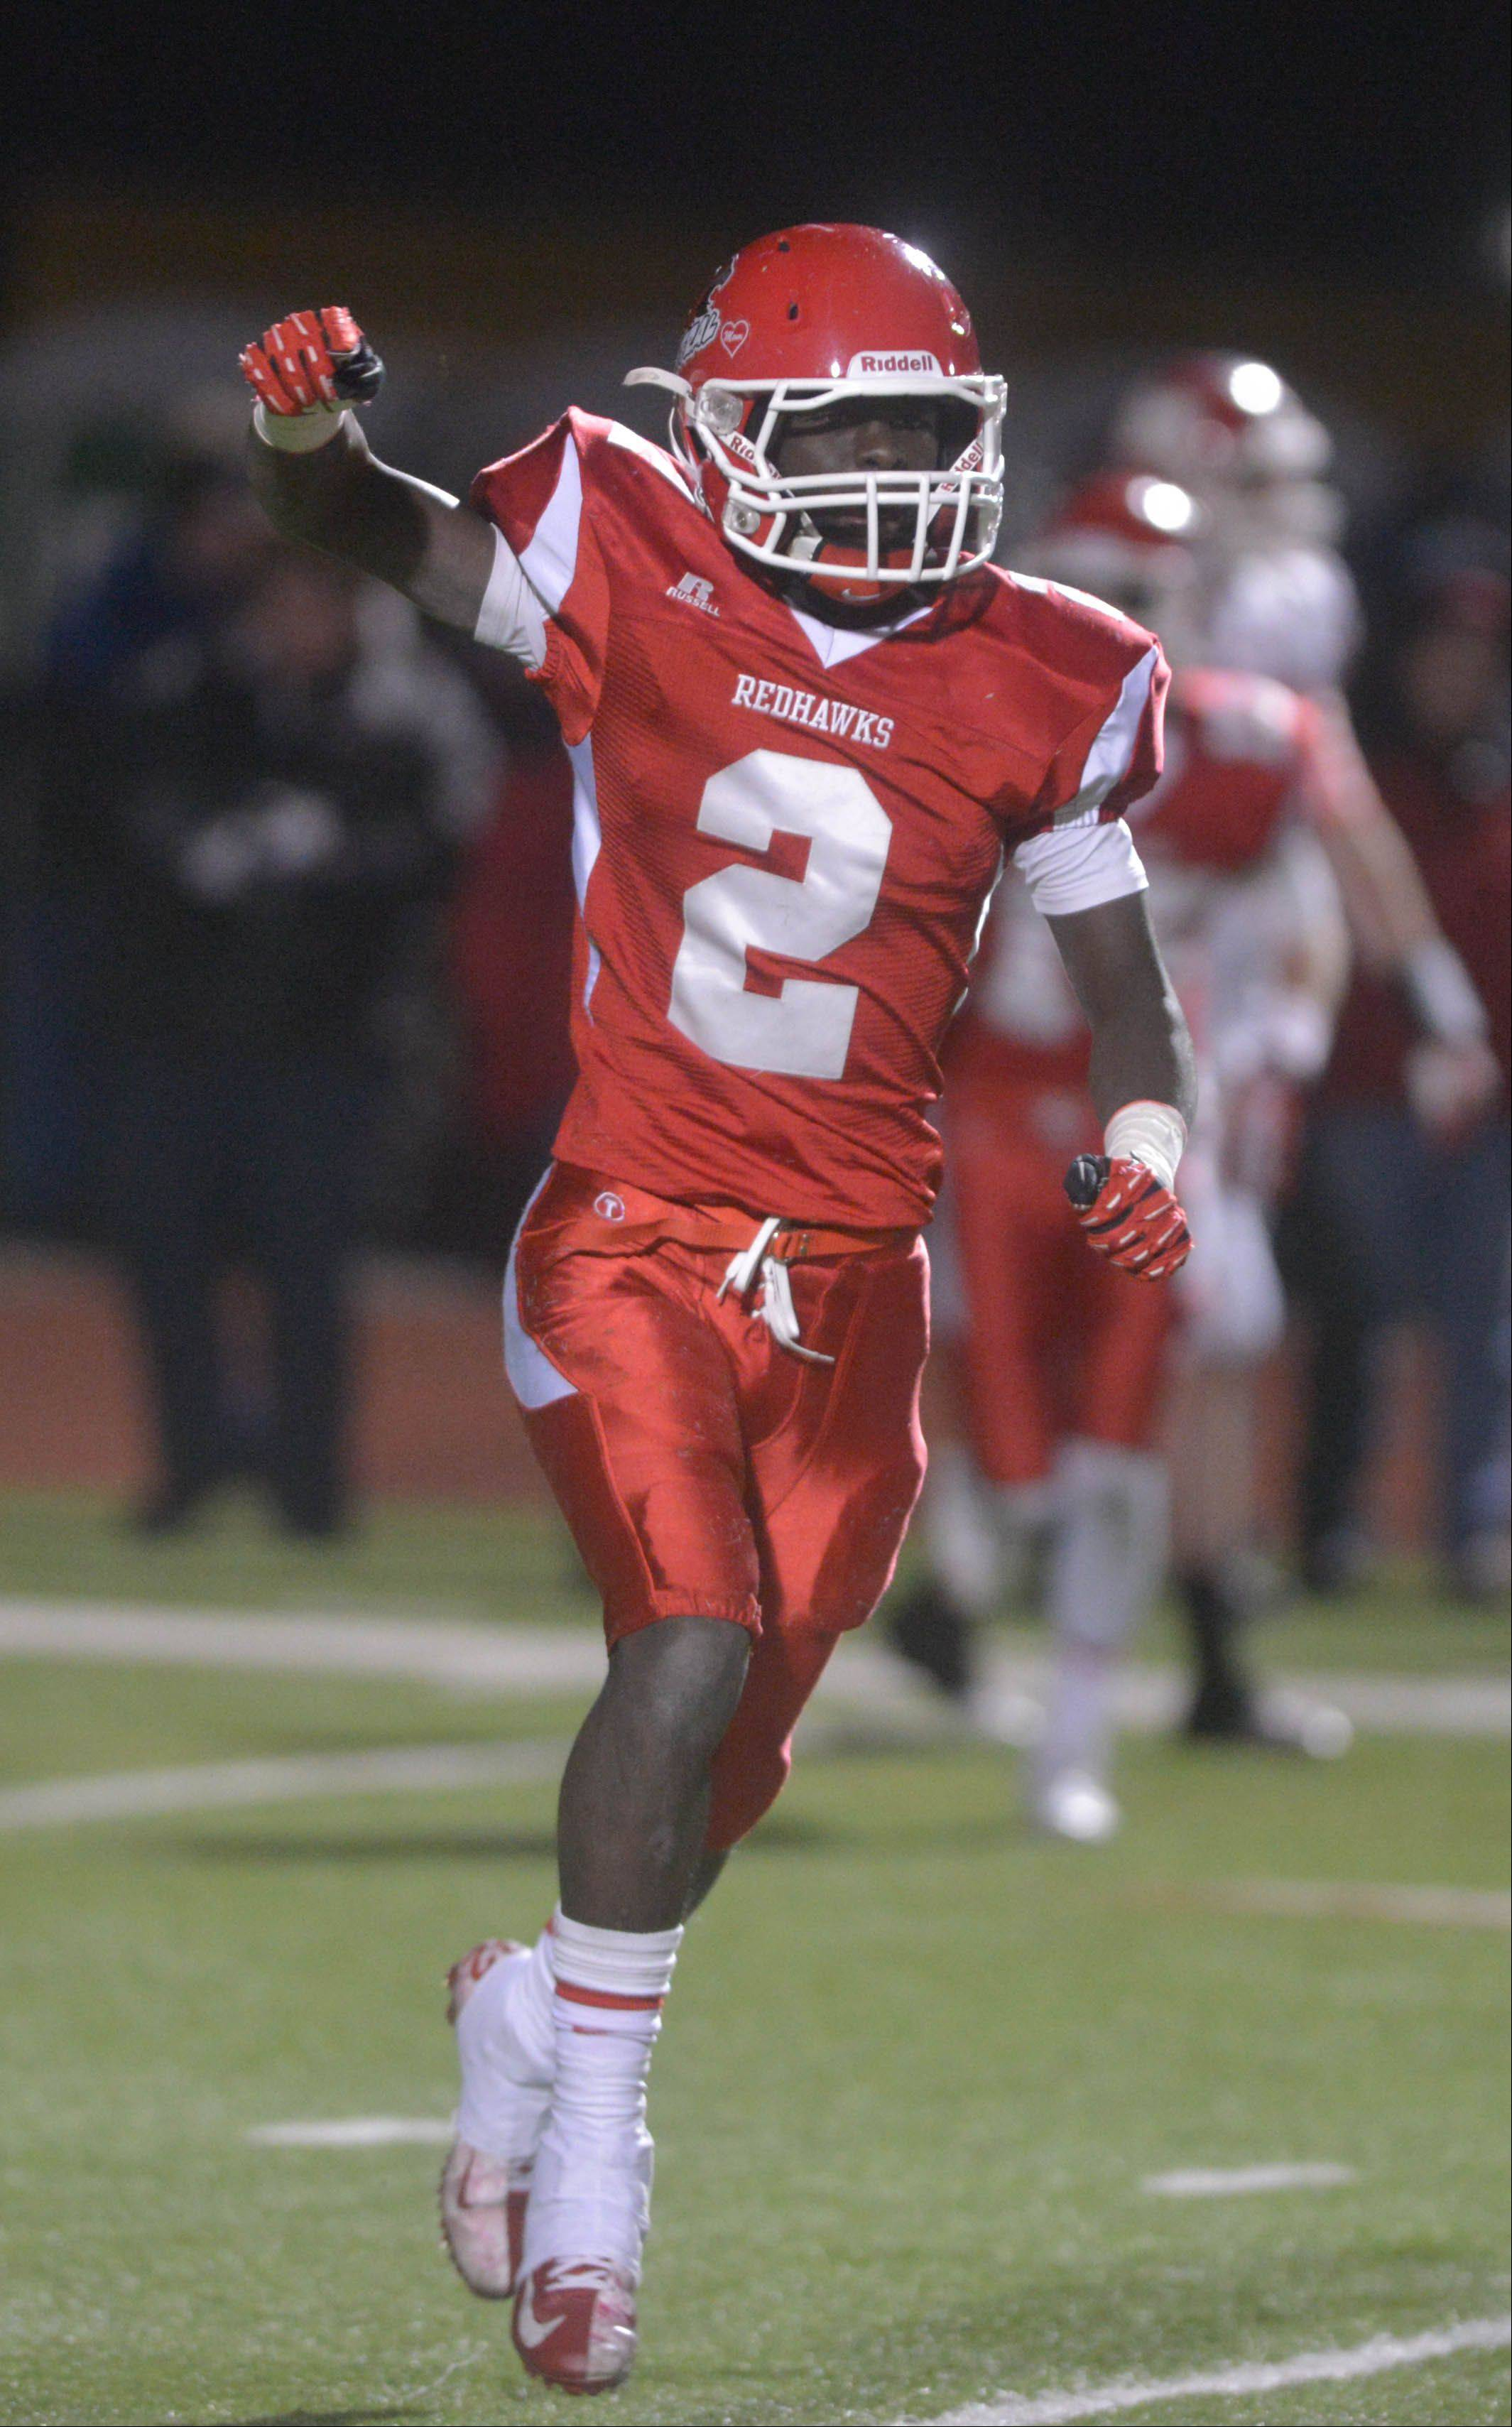 Jon Lubanza of Naperville Central celebrates an interception during the Marist at Naperville Central Class 8A semifinal Saturday.